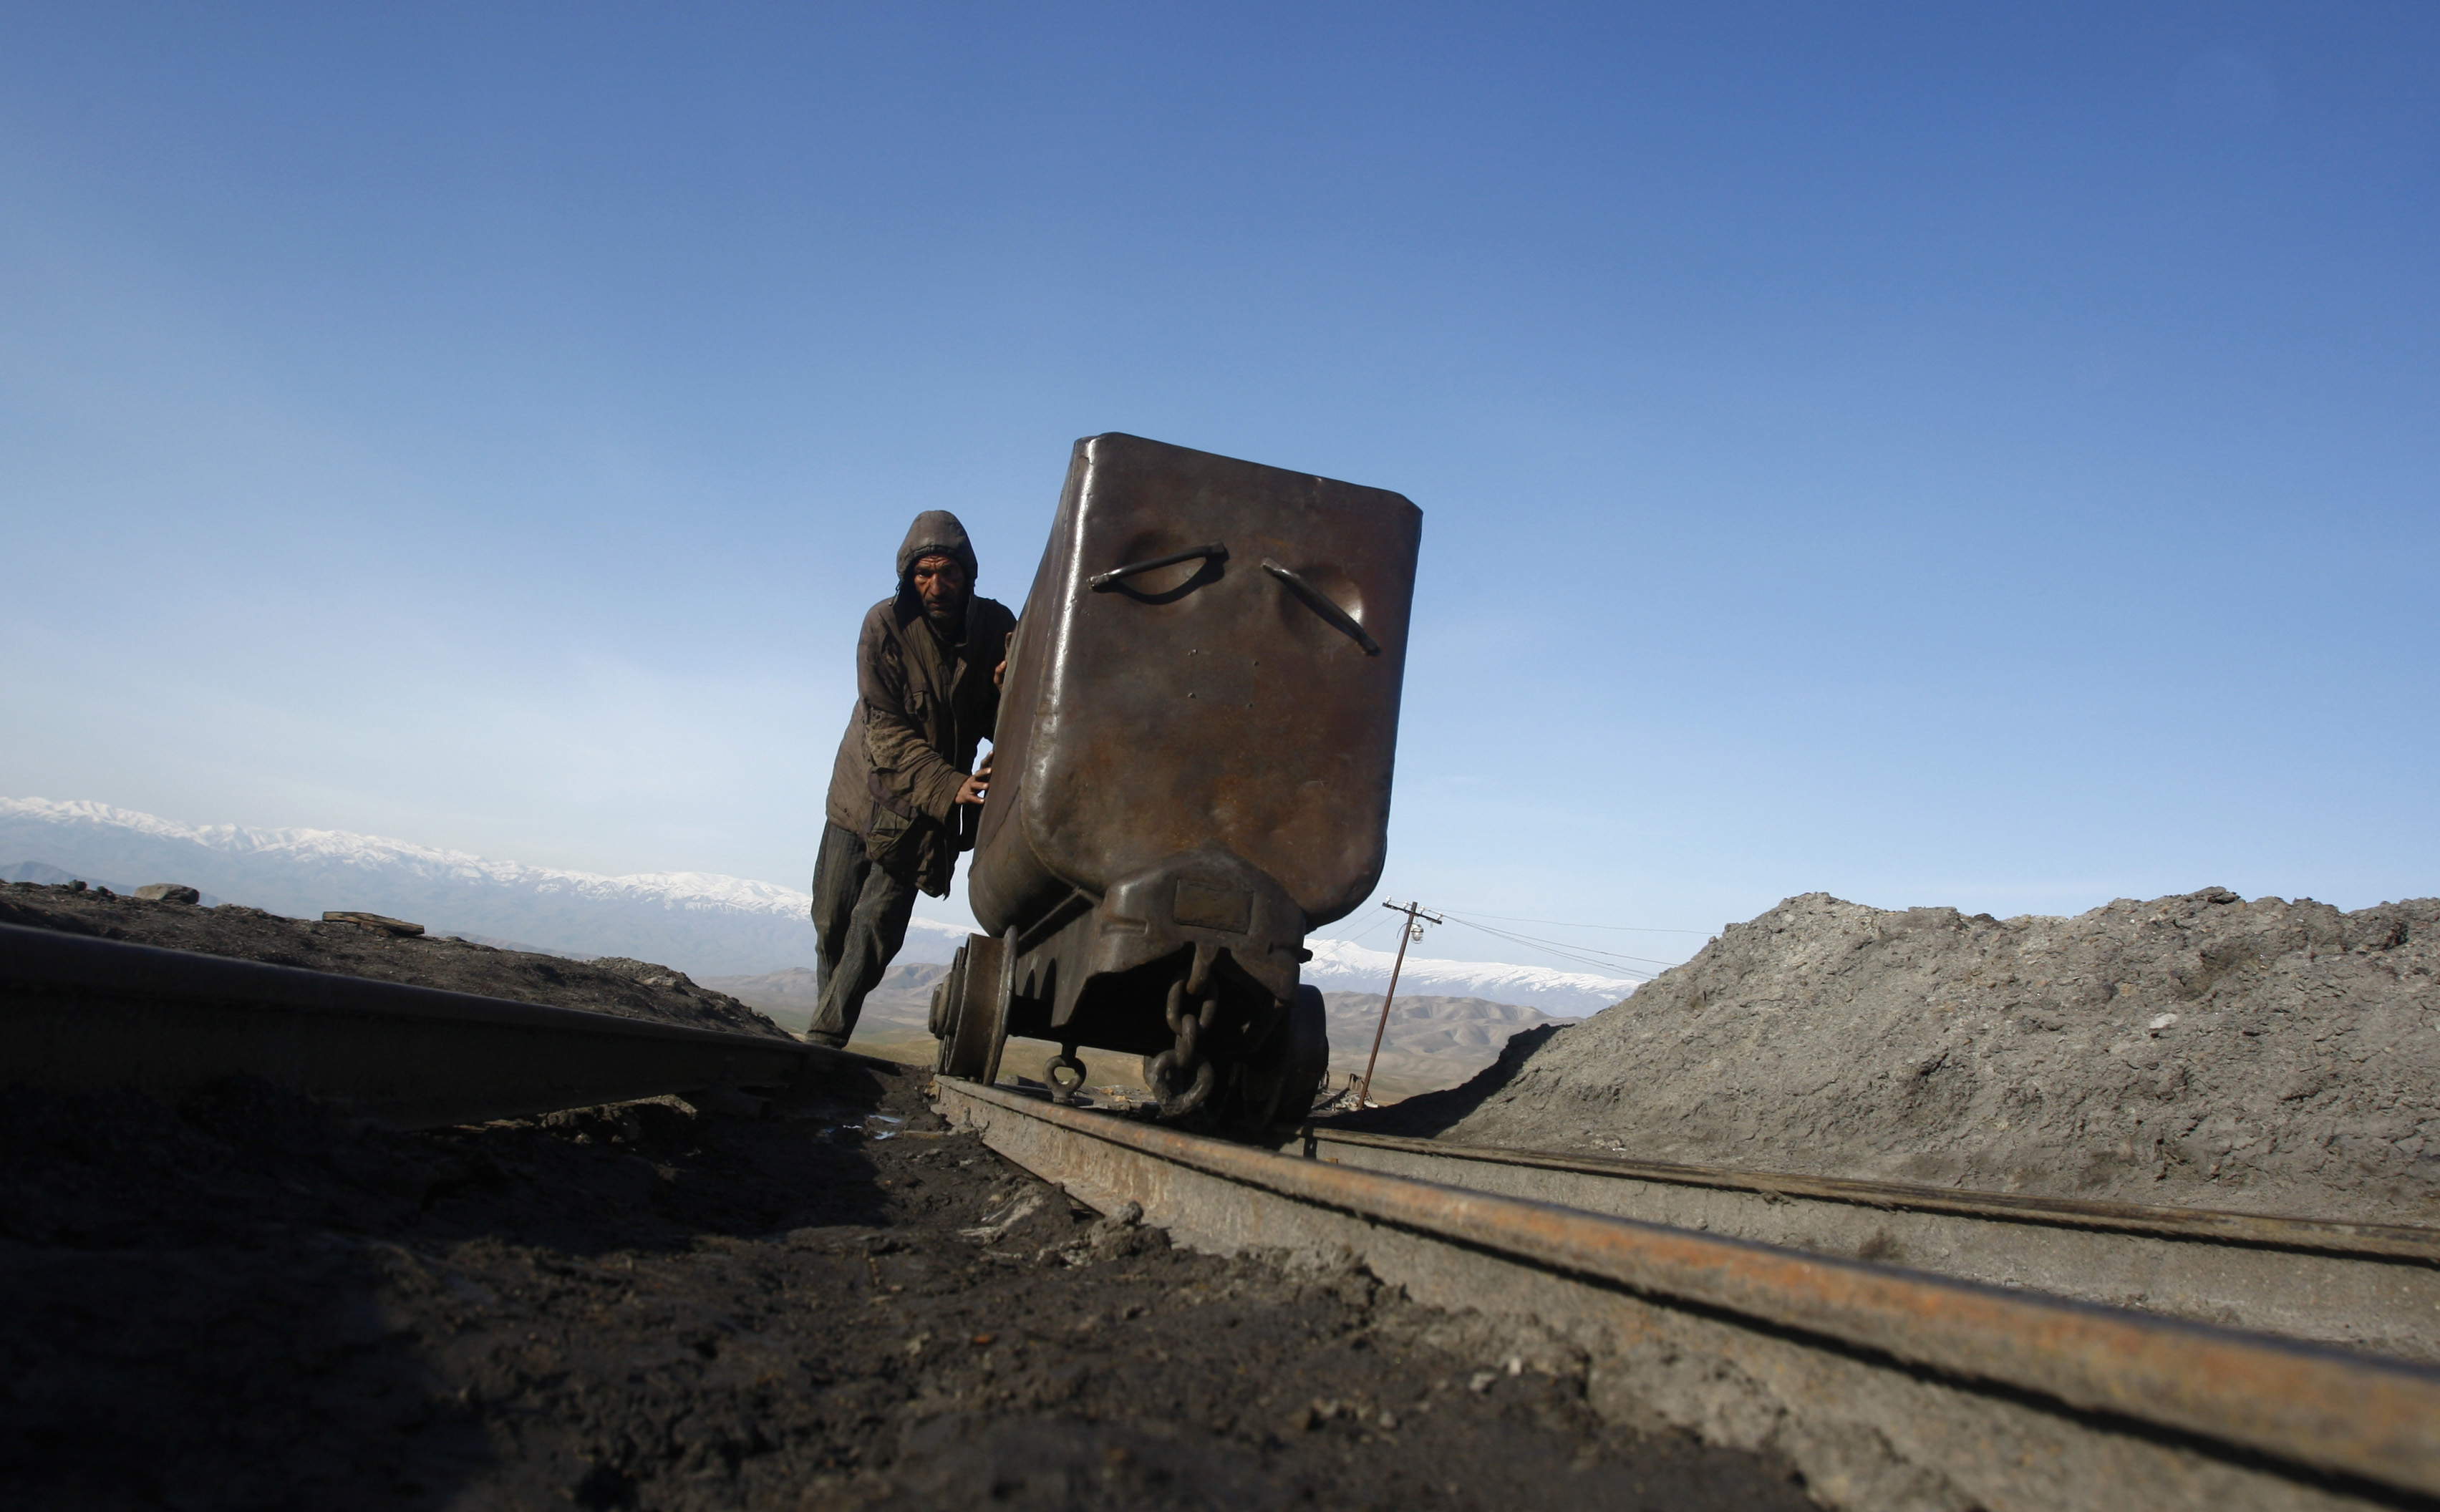 An Afghan miner pushes a wagon at the Karkar coal mine in Pul-i-Kumri, about 170km north of Kabul, March 8, 2009.   REUTERS/Ahmad Masood